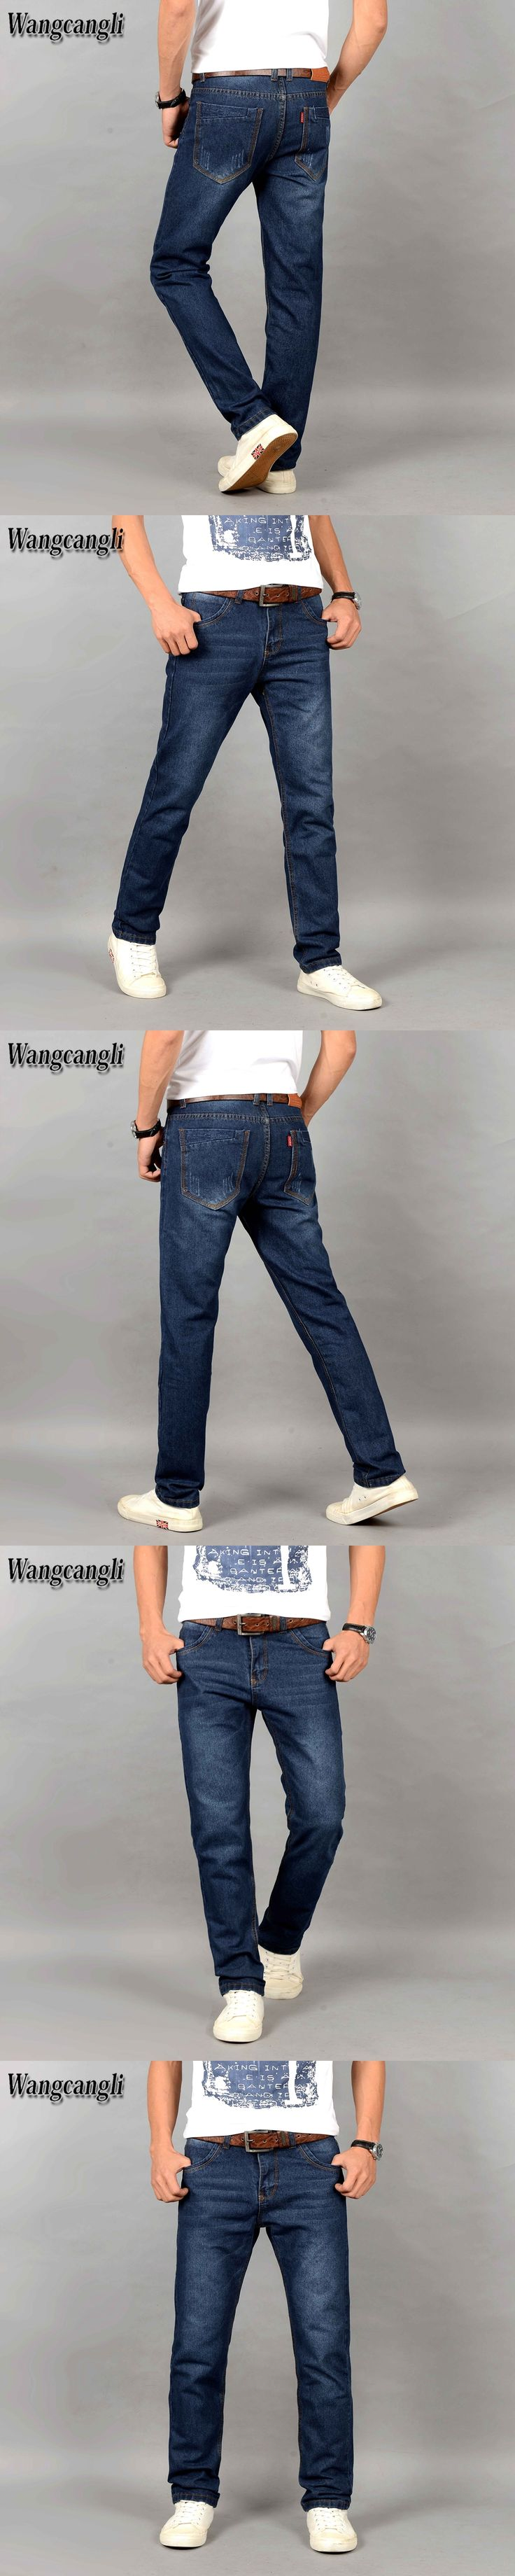 2017 New Autumn Fashion Hole Jeans Men Long Trousers skinny ripped distressed jeans Denim Pants Plus Size Skinny Boys Jeans 38